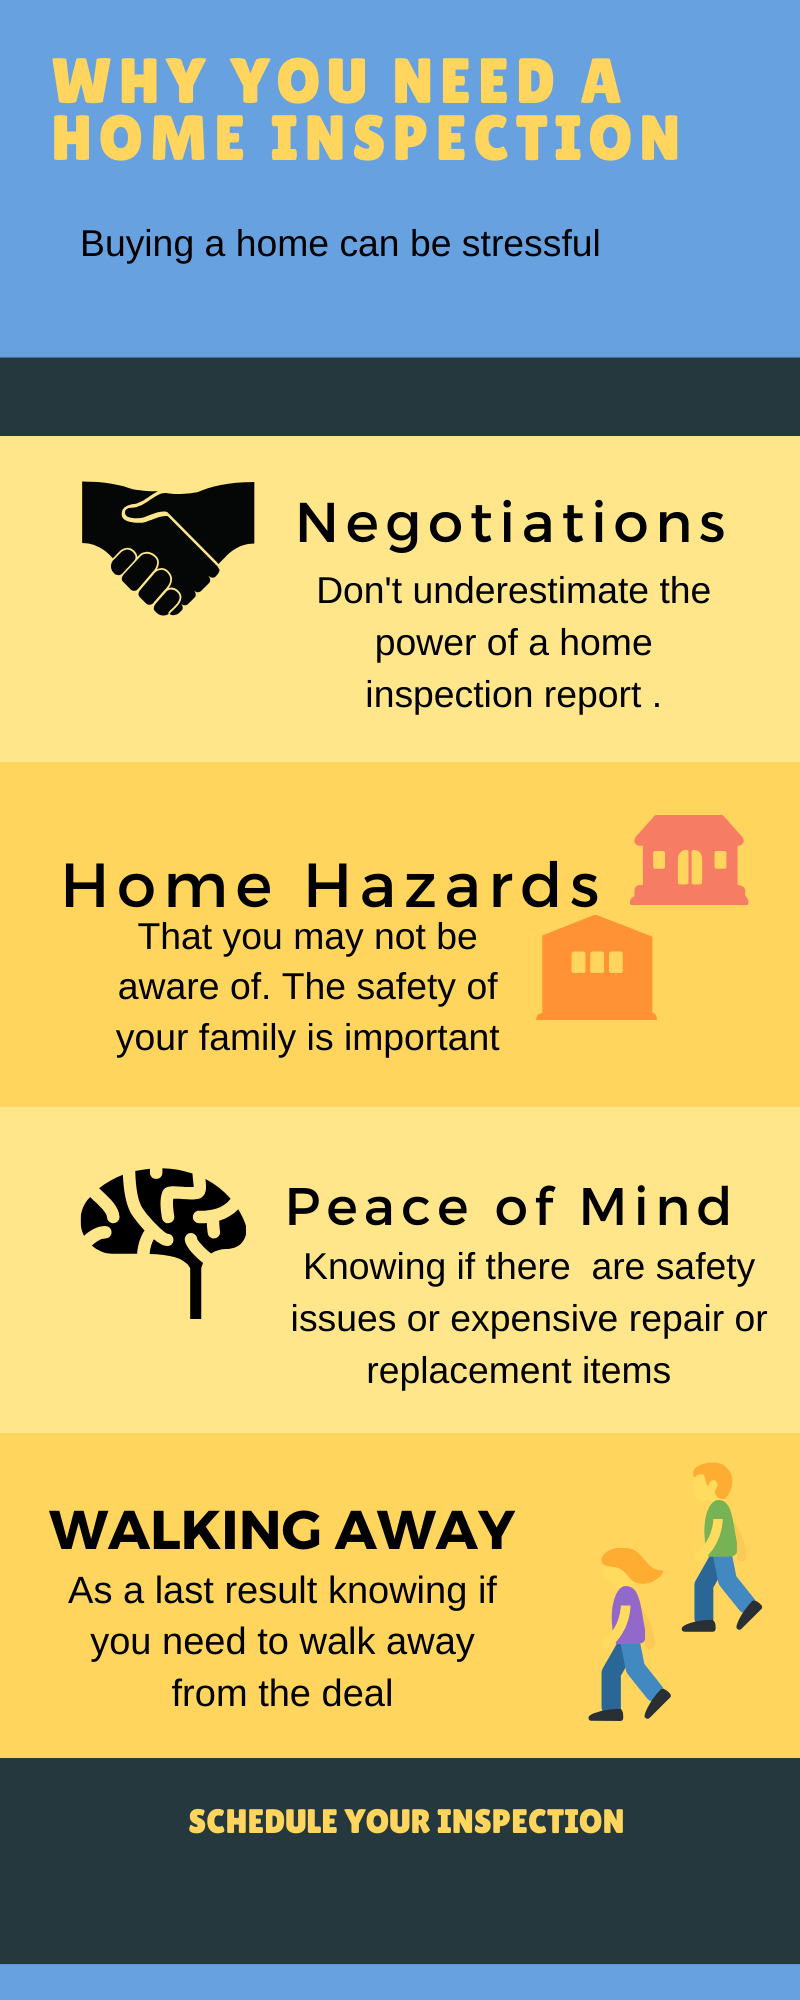 Reasons+to+have+a+home+inspection+in+Hou